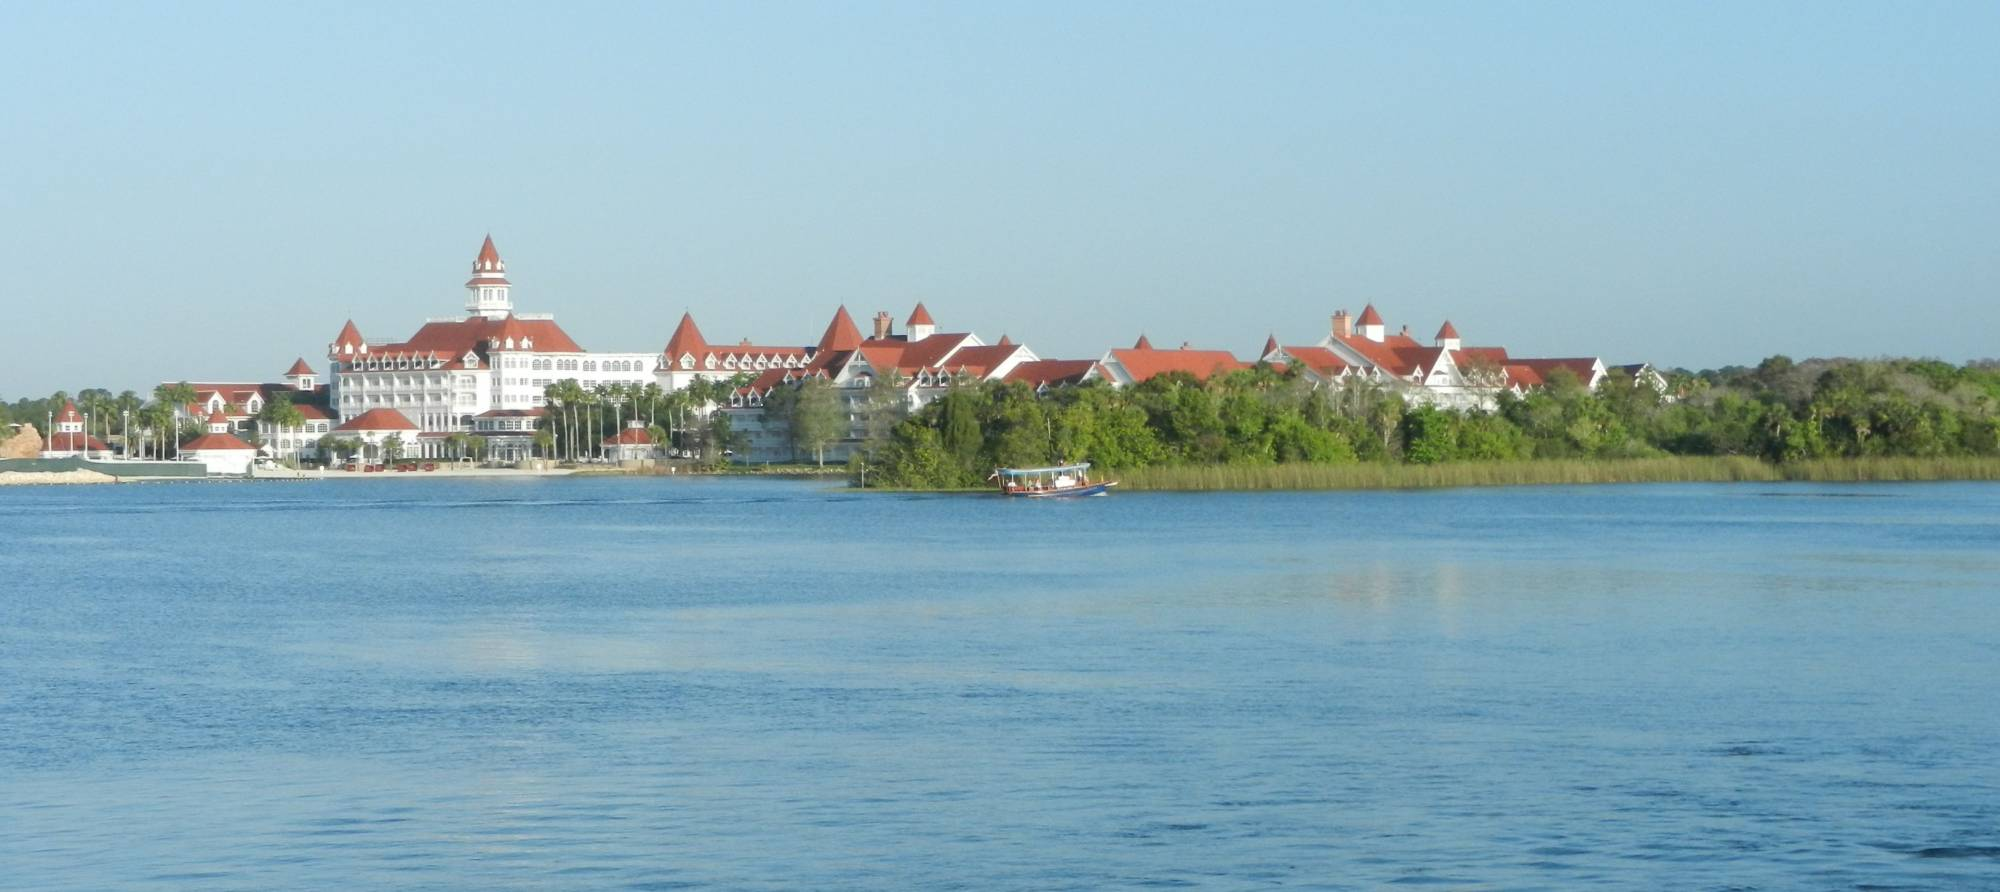 Waiting for the Ferry - View of Grand Floridian